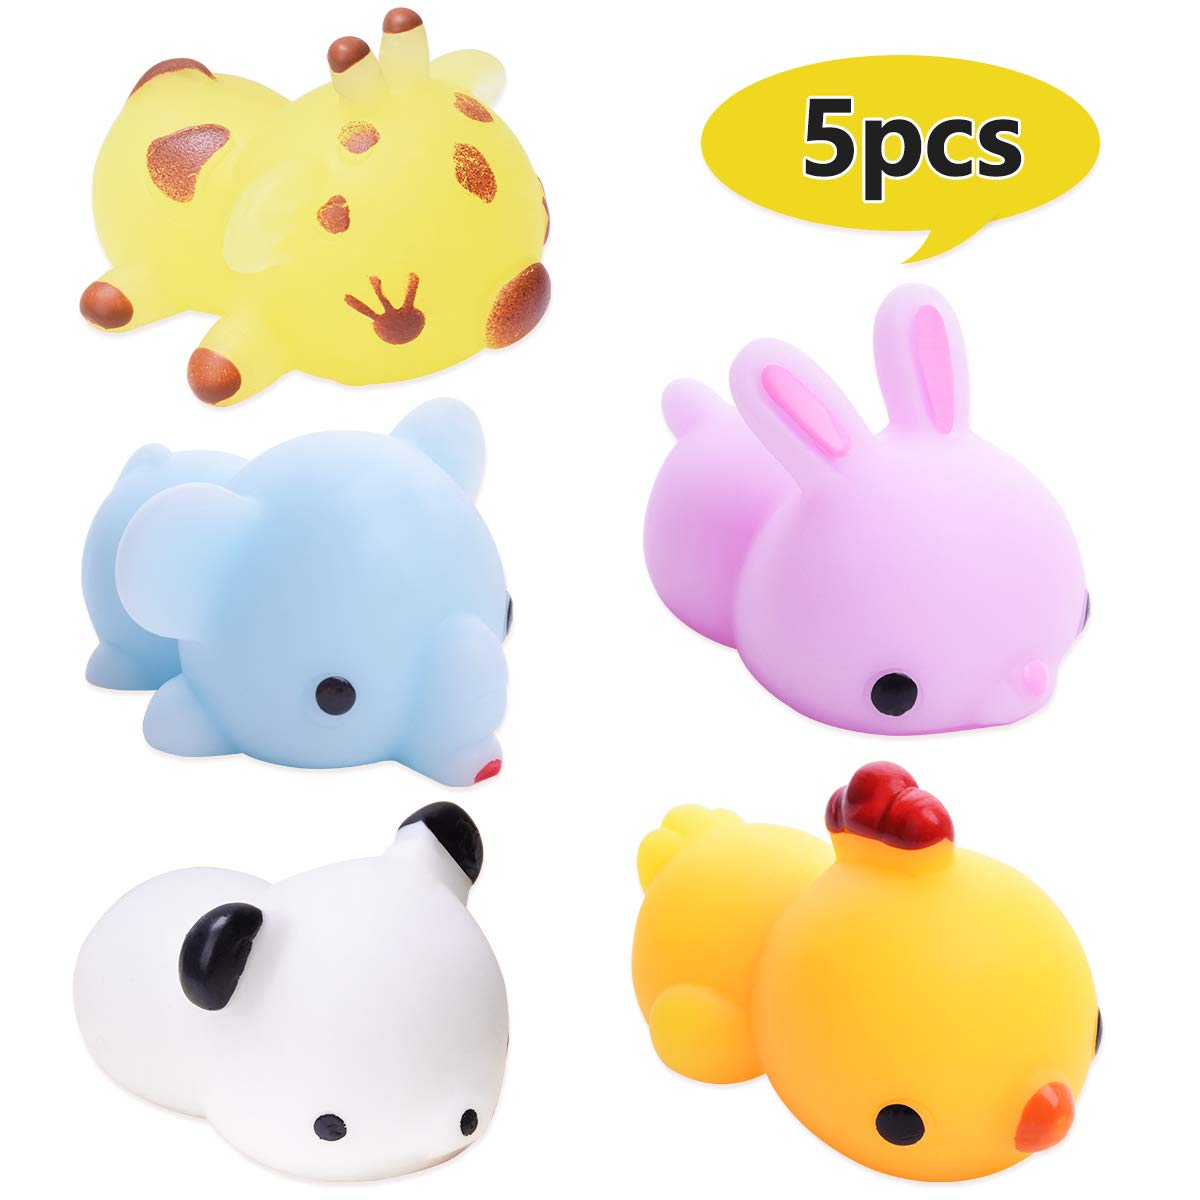 LEEHUR 5Pcs Advanced Mochi Squishy Toys Animal Party Favors Prizes Squishies Squeeze Kawaii Funny Soft Stress and Anxiety Relief ADHD ADD for Kids Adults Relief School Prizes